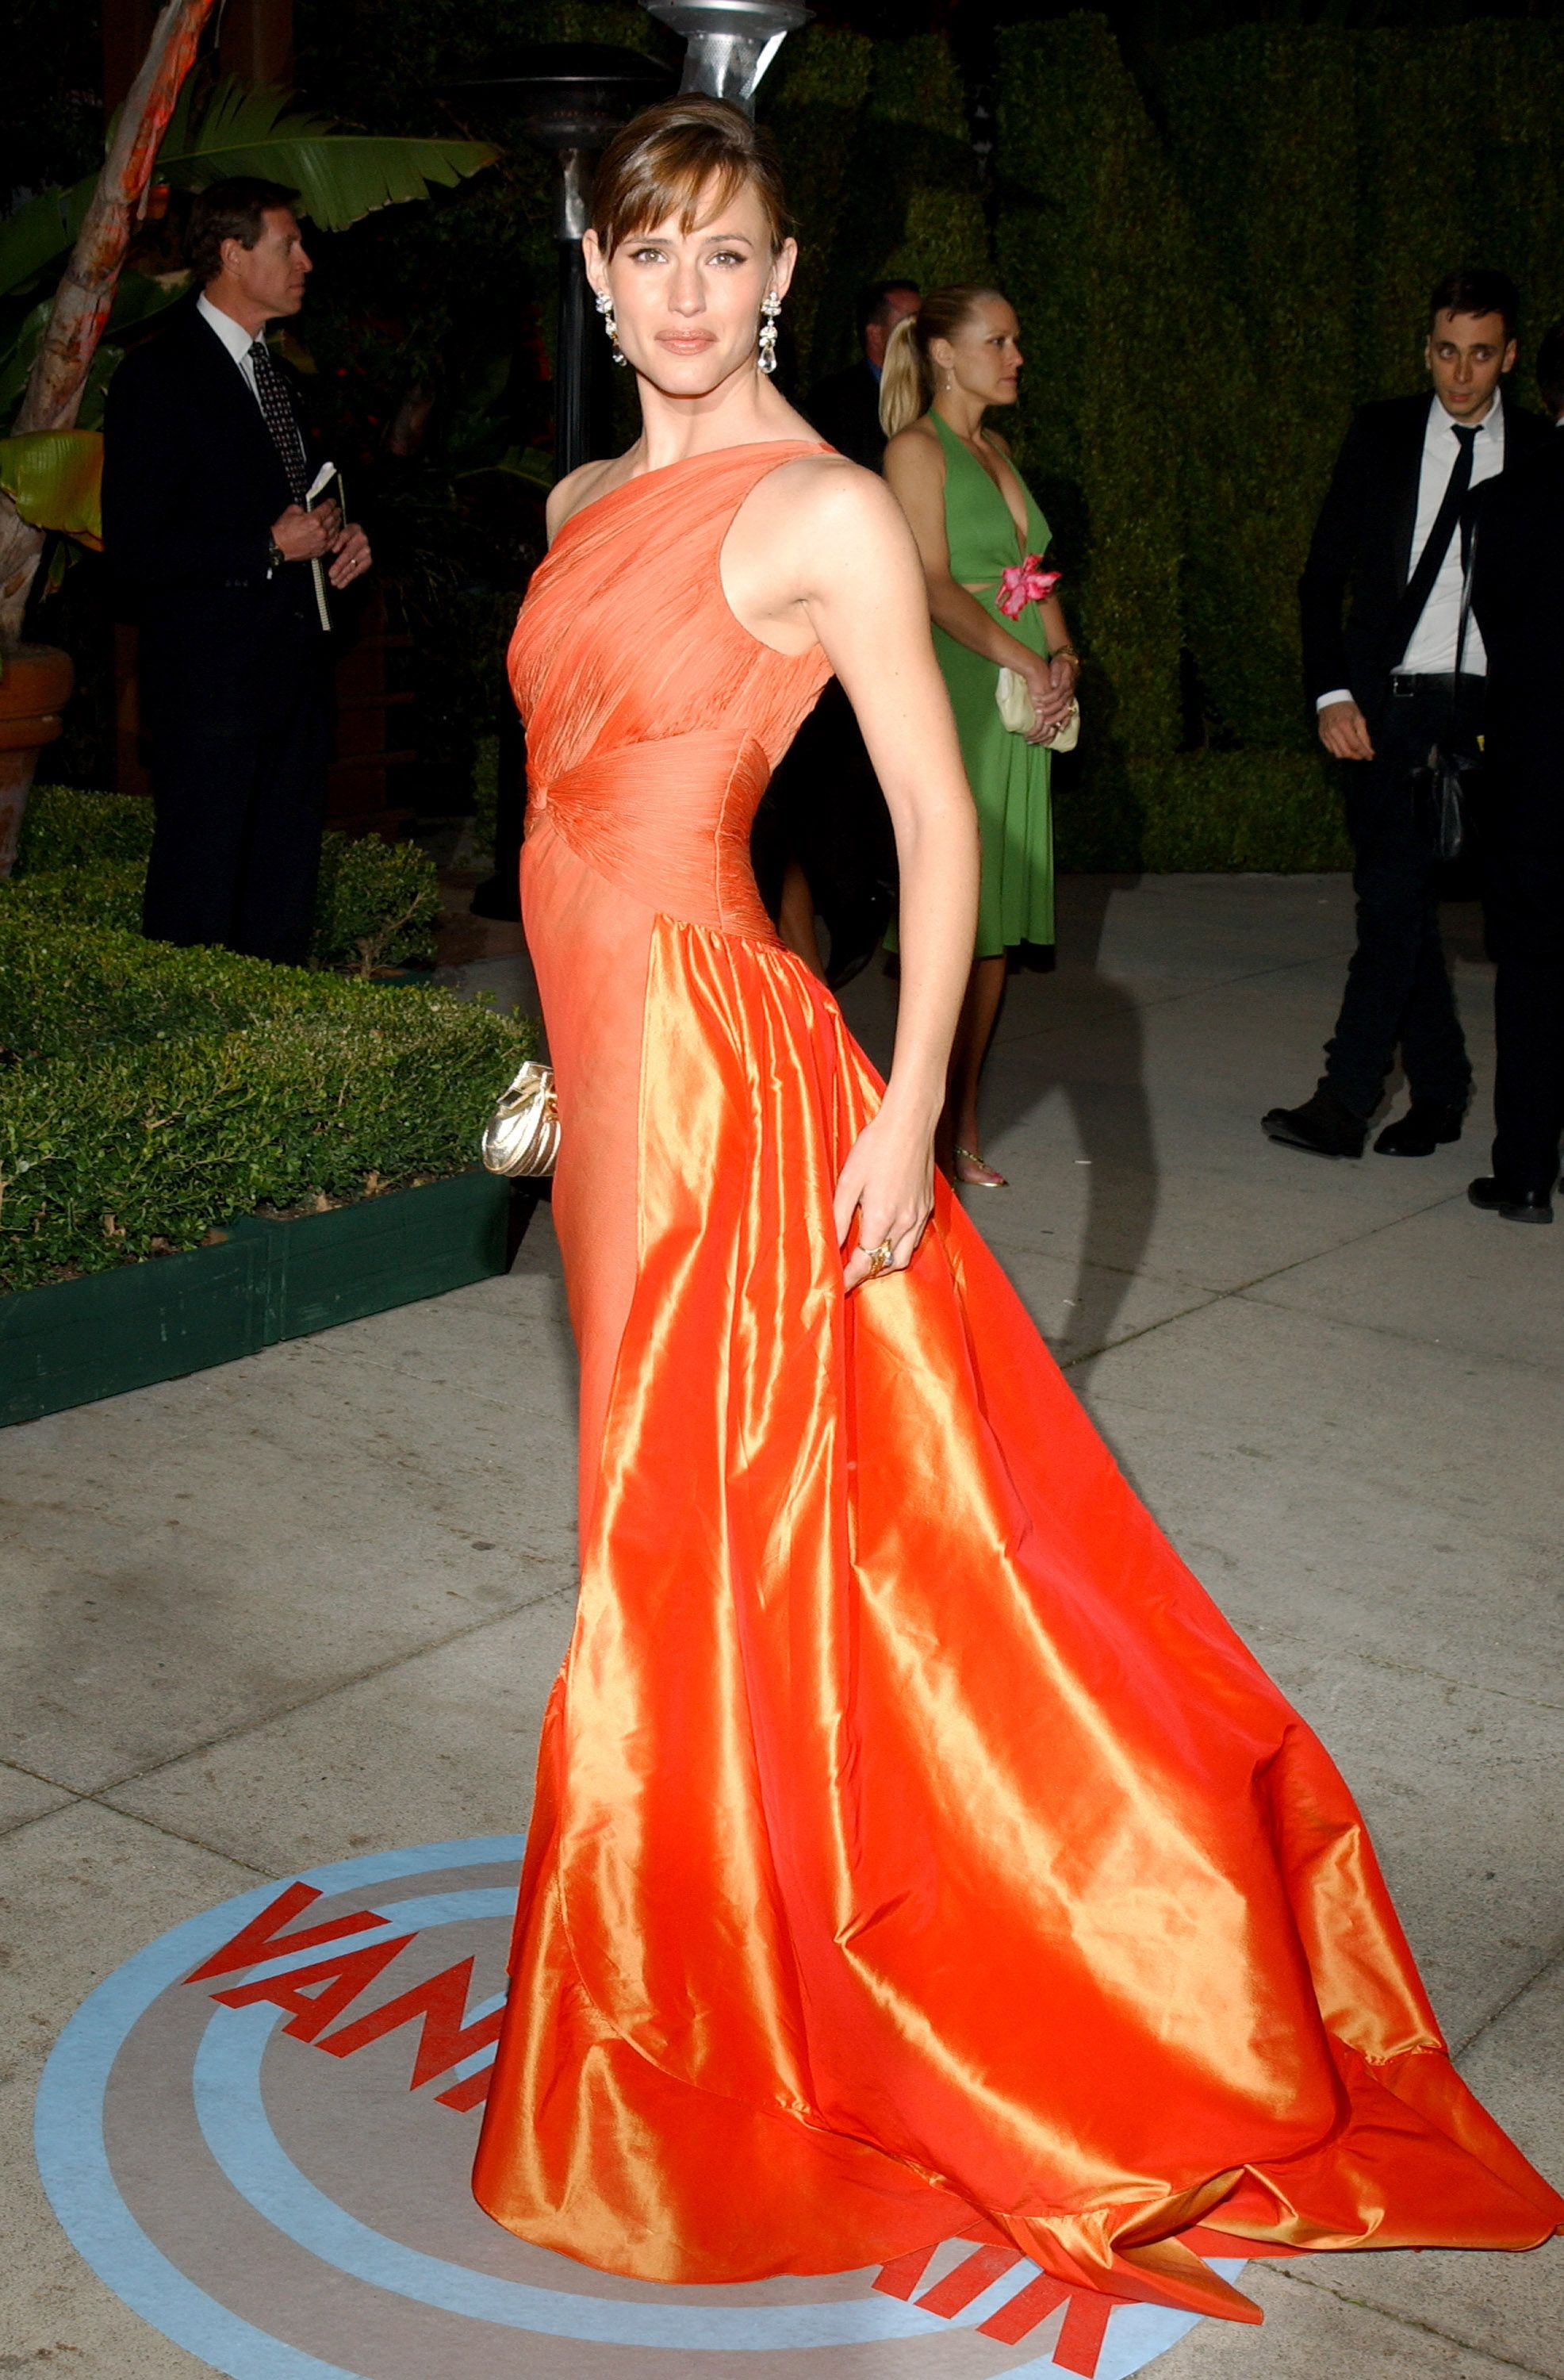 February 29, 2004 Looking vibrant in Valentino Haute Couture at the 2004 Vanity Fair Oscar Party in Beverly Hills.